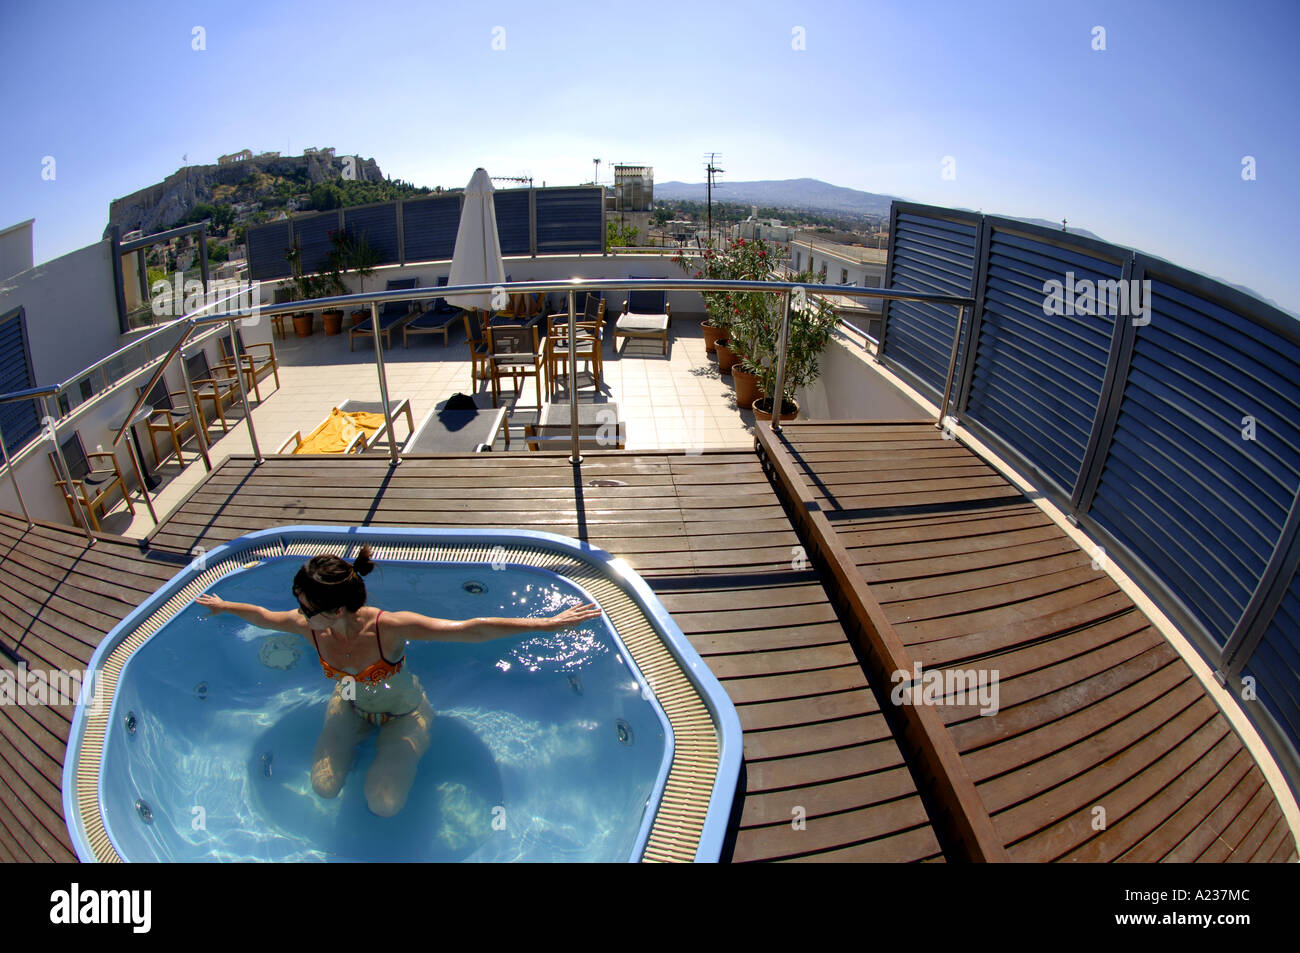 woman in jacuzzi roof rooftop hotel plaka athens greece greek capital city summer holiday vacation travel tourism lesiure freeti - Stock Image